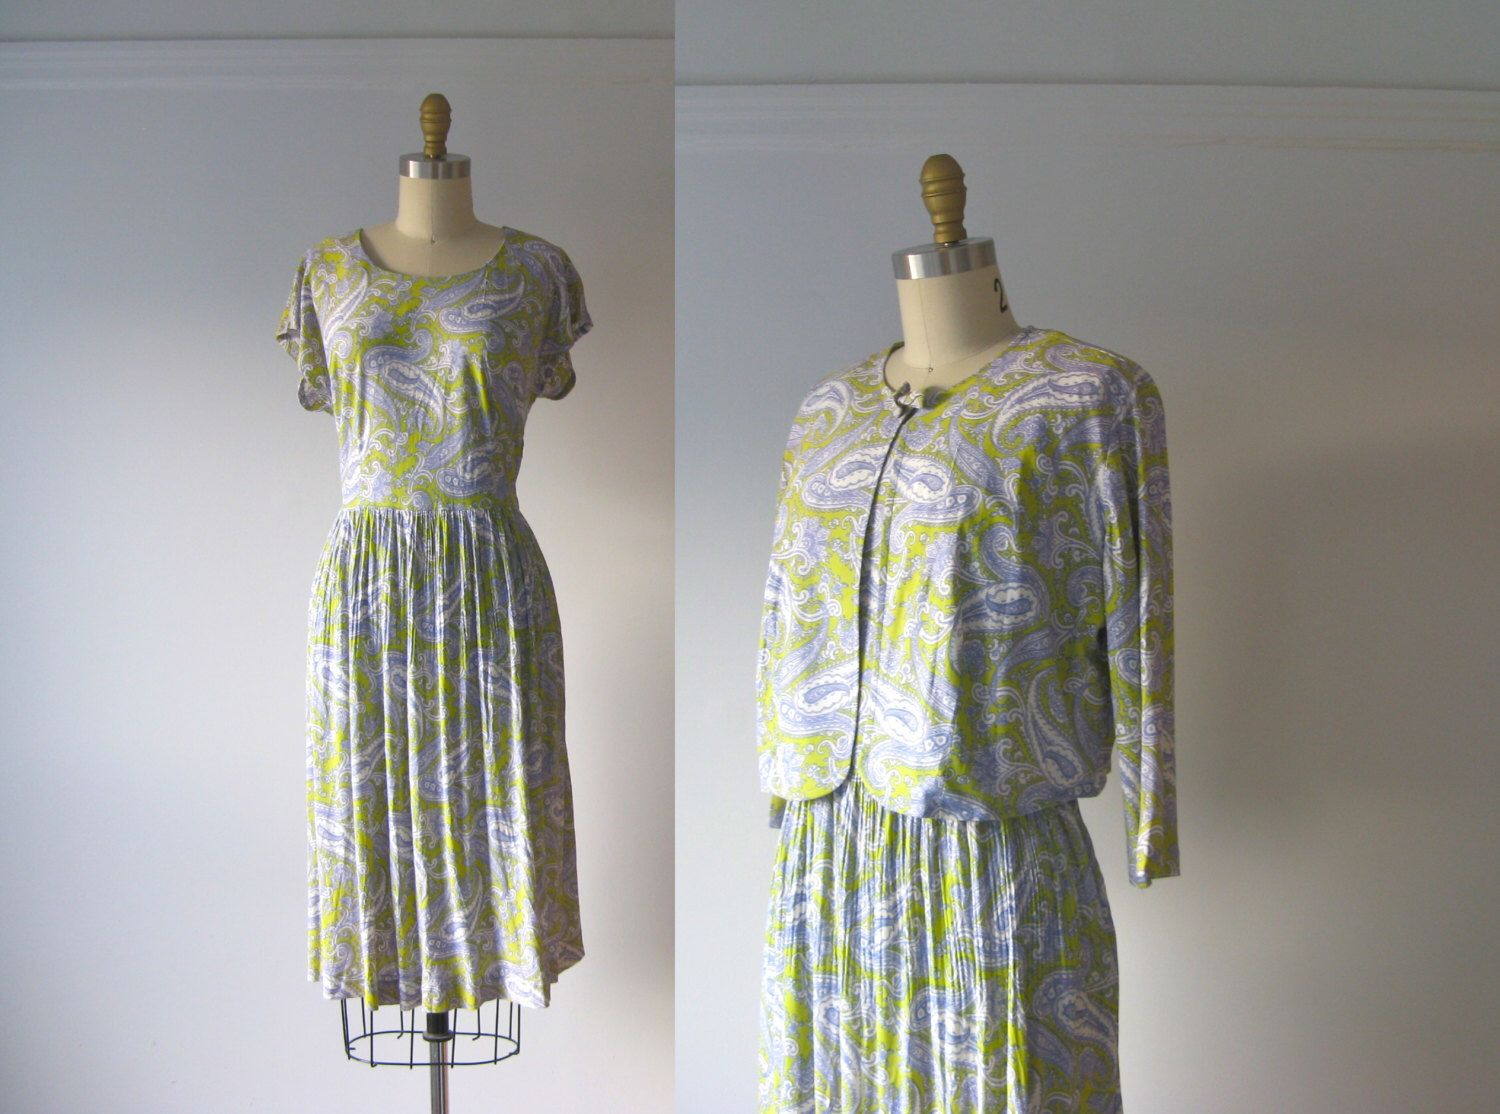 SALE vintage 1960s dress / 60s dress / Paisley Pastel by Dronning on Etsy https://www.etsy.com/listing/181166437/sale-vintage-1960s-dress-60s-dress